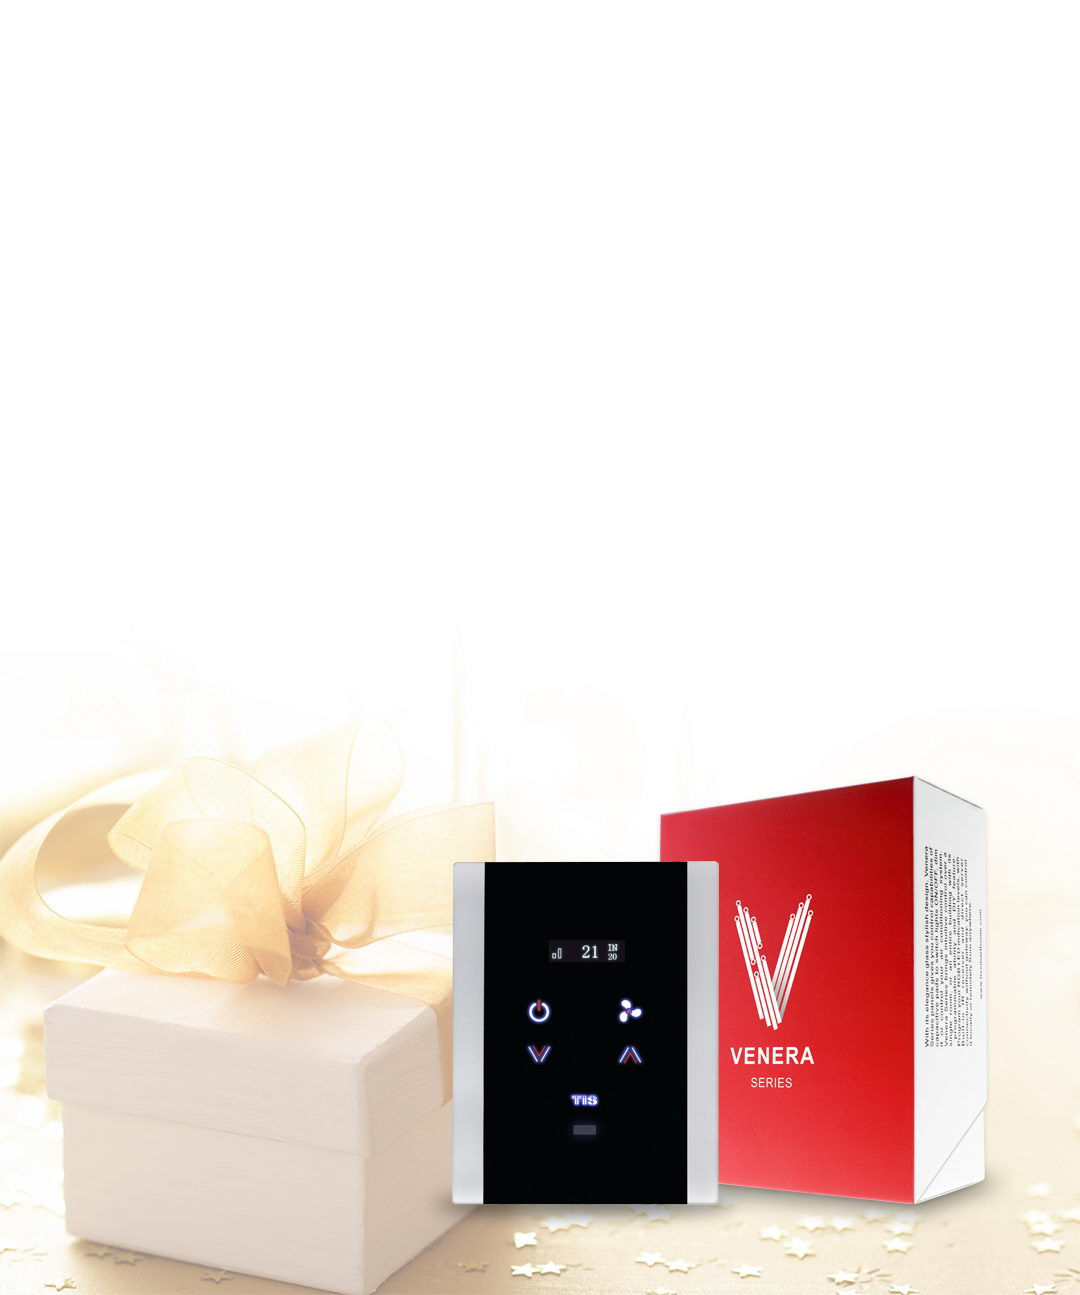 With Love we introduce you venera wall thermostat – TIS smart home